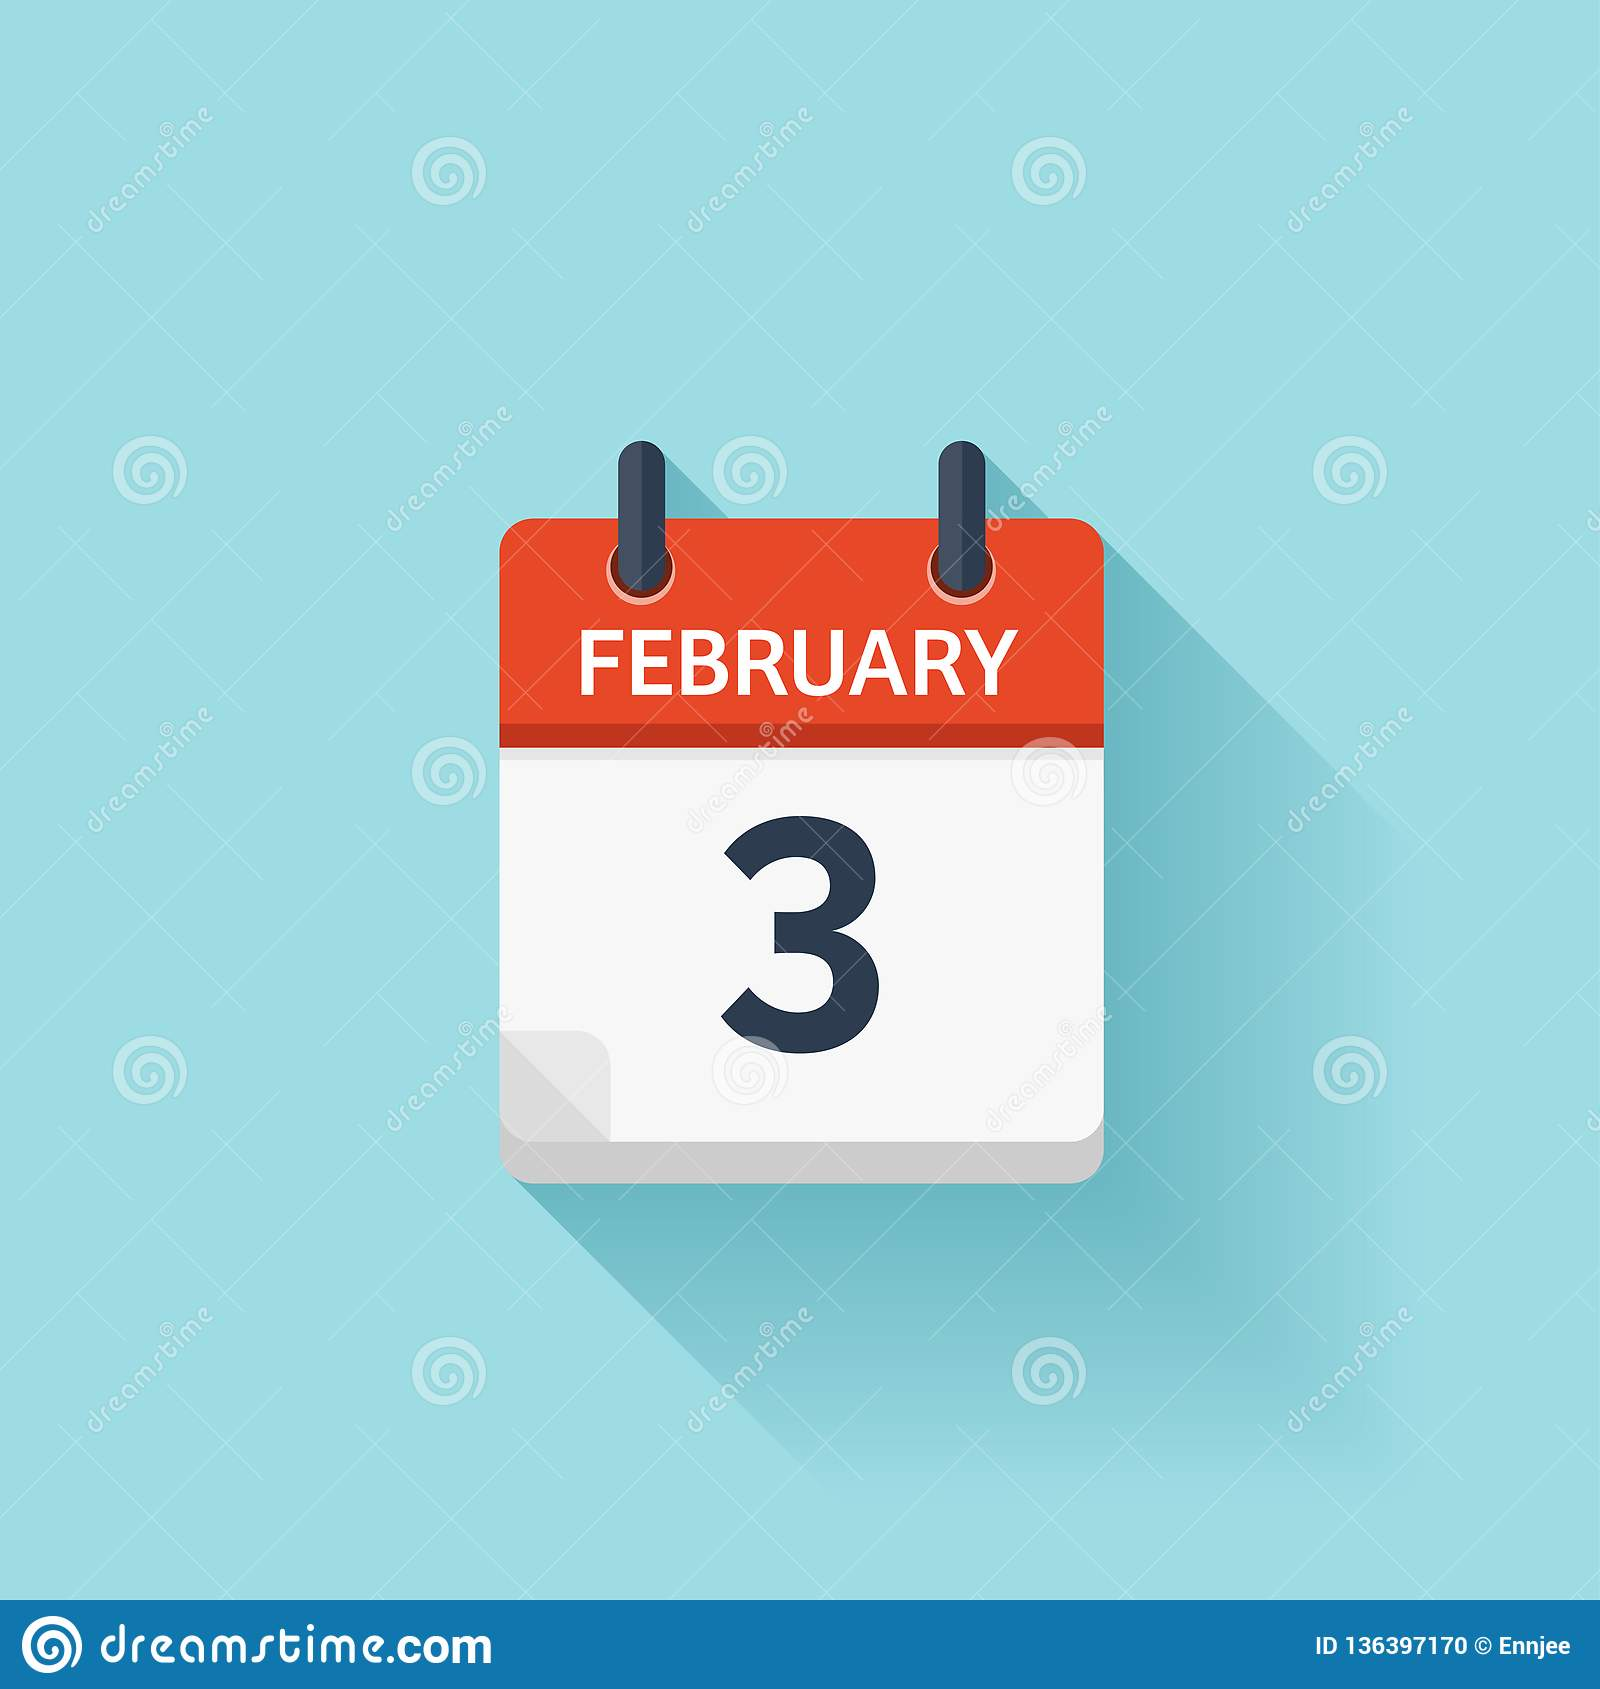 Daily Holiday Calendar.February 3 Vector Flat Daily Calendar Icon Date And Time Day